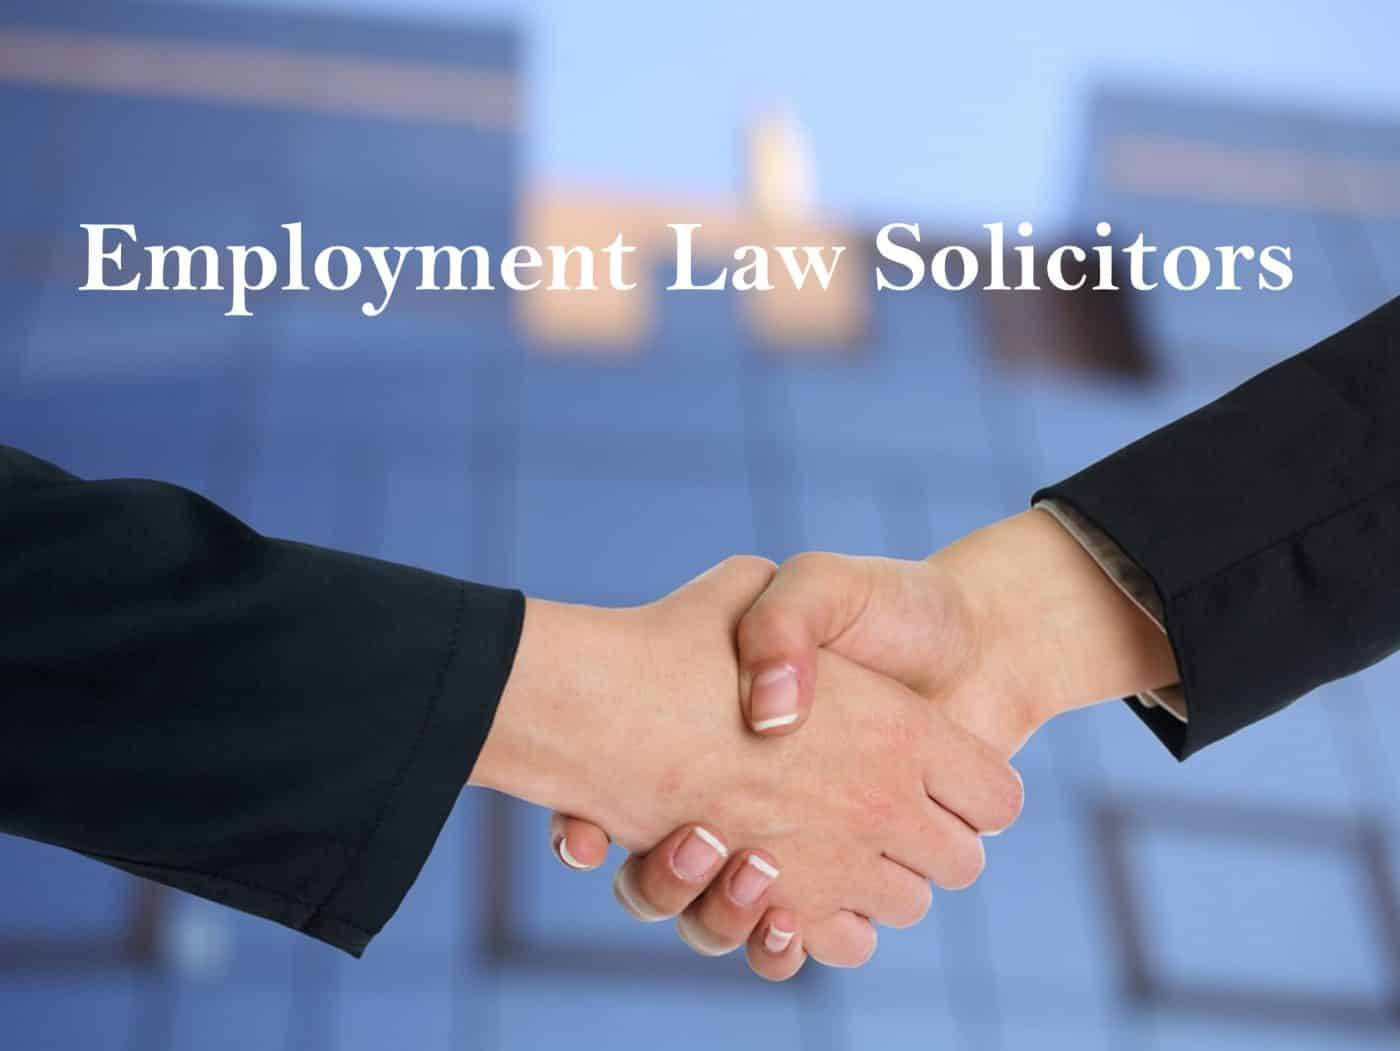 Employment Law Solicitors Image